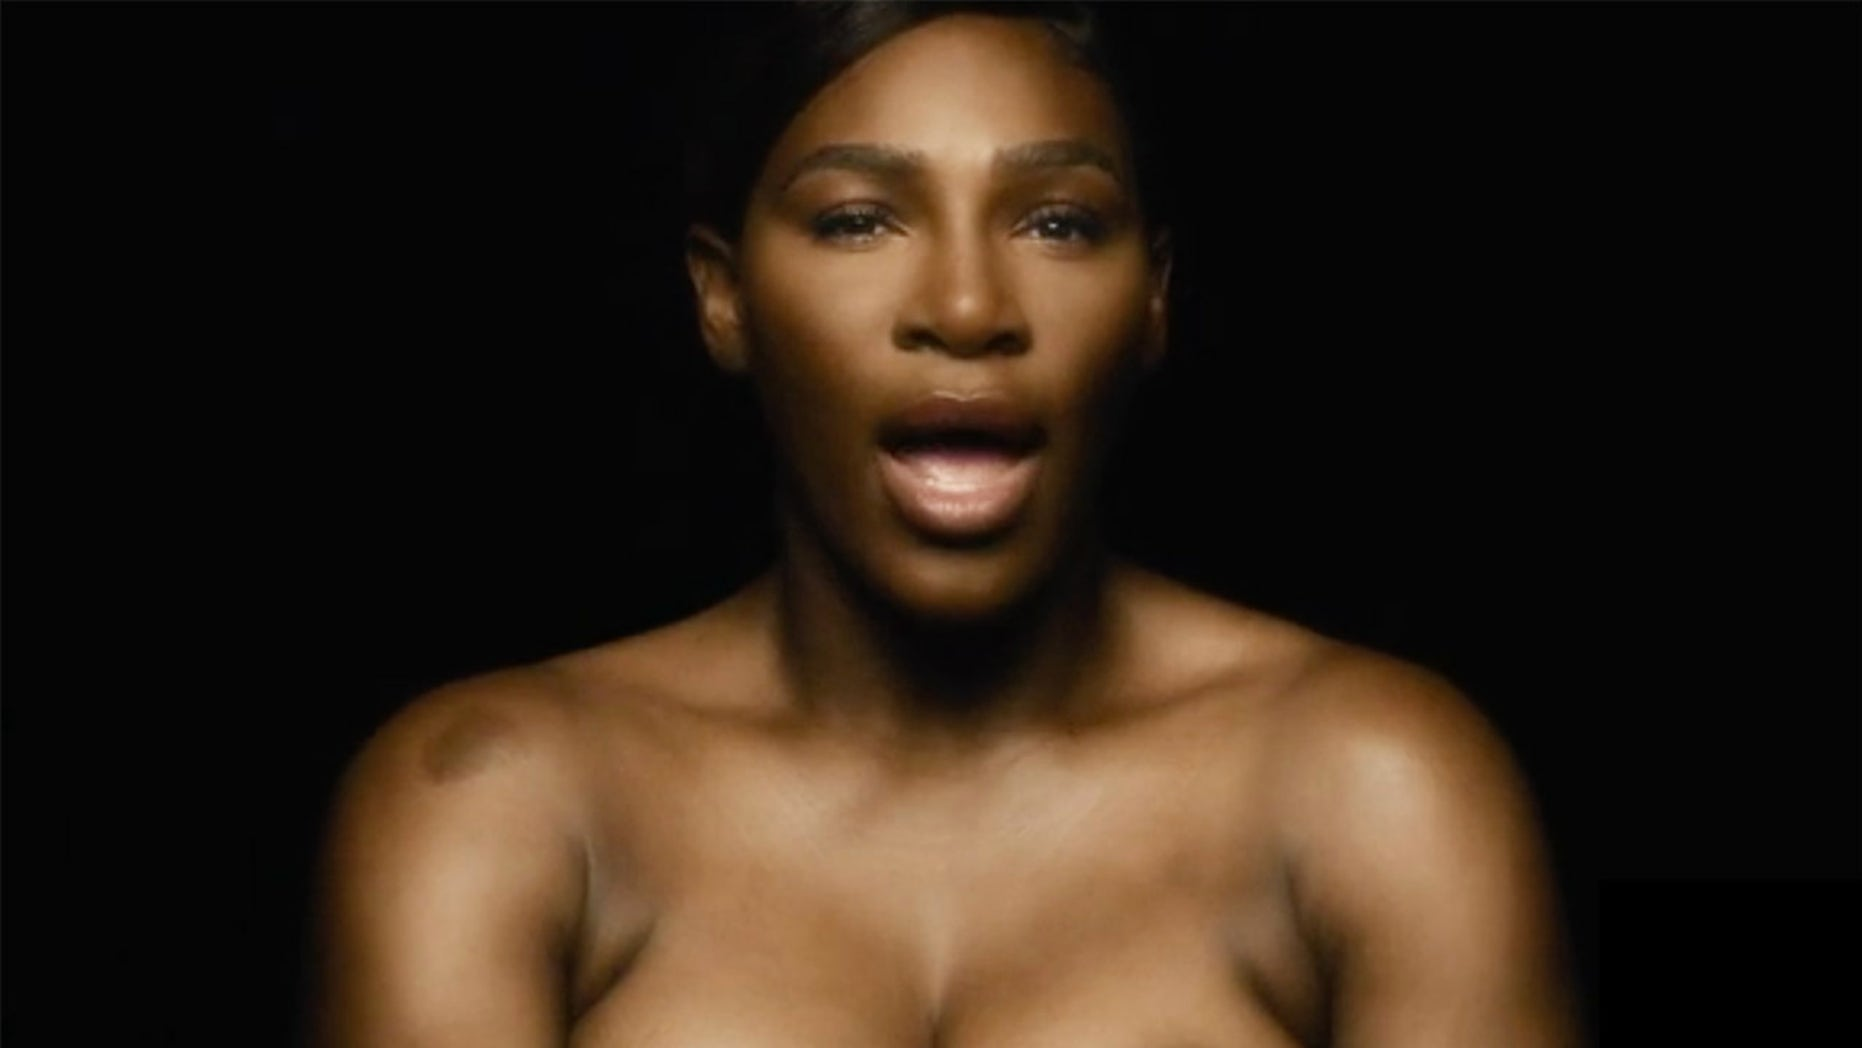 Serena Williams did a music video for Breast Cancer Awareness Month.